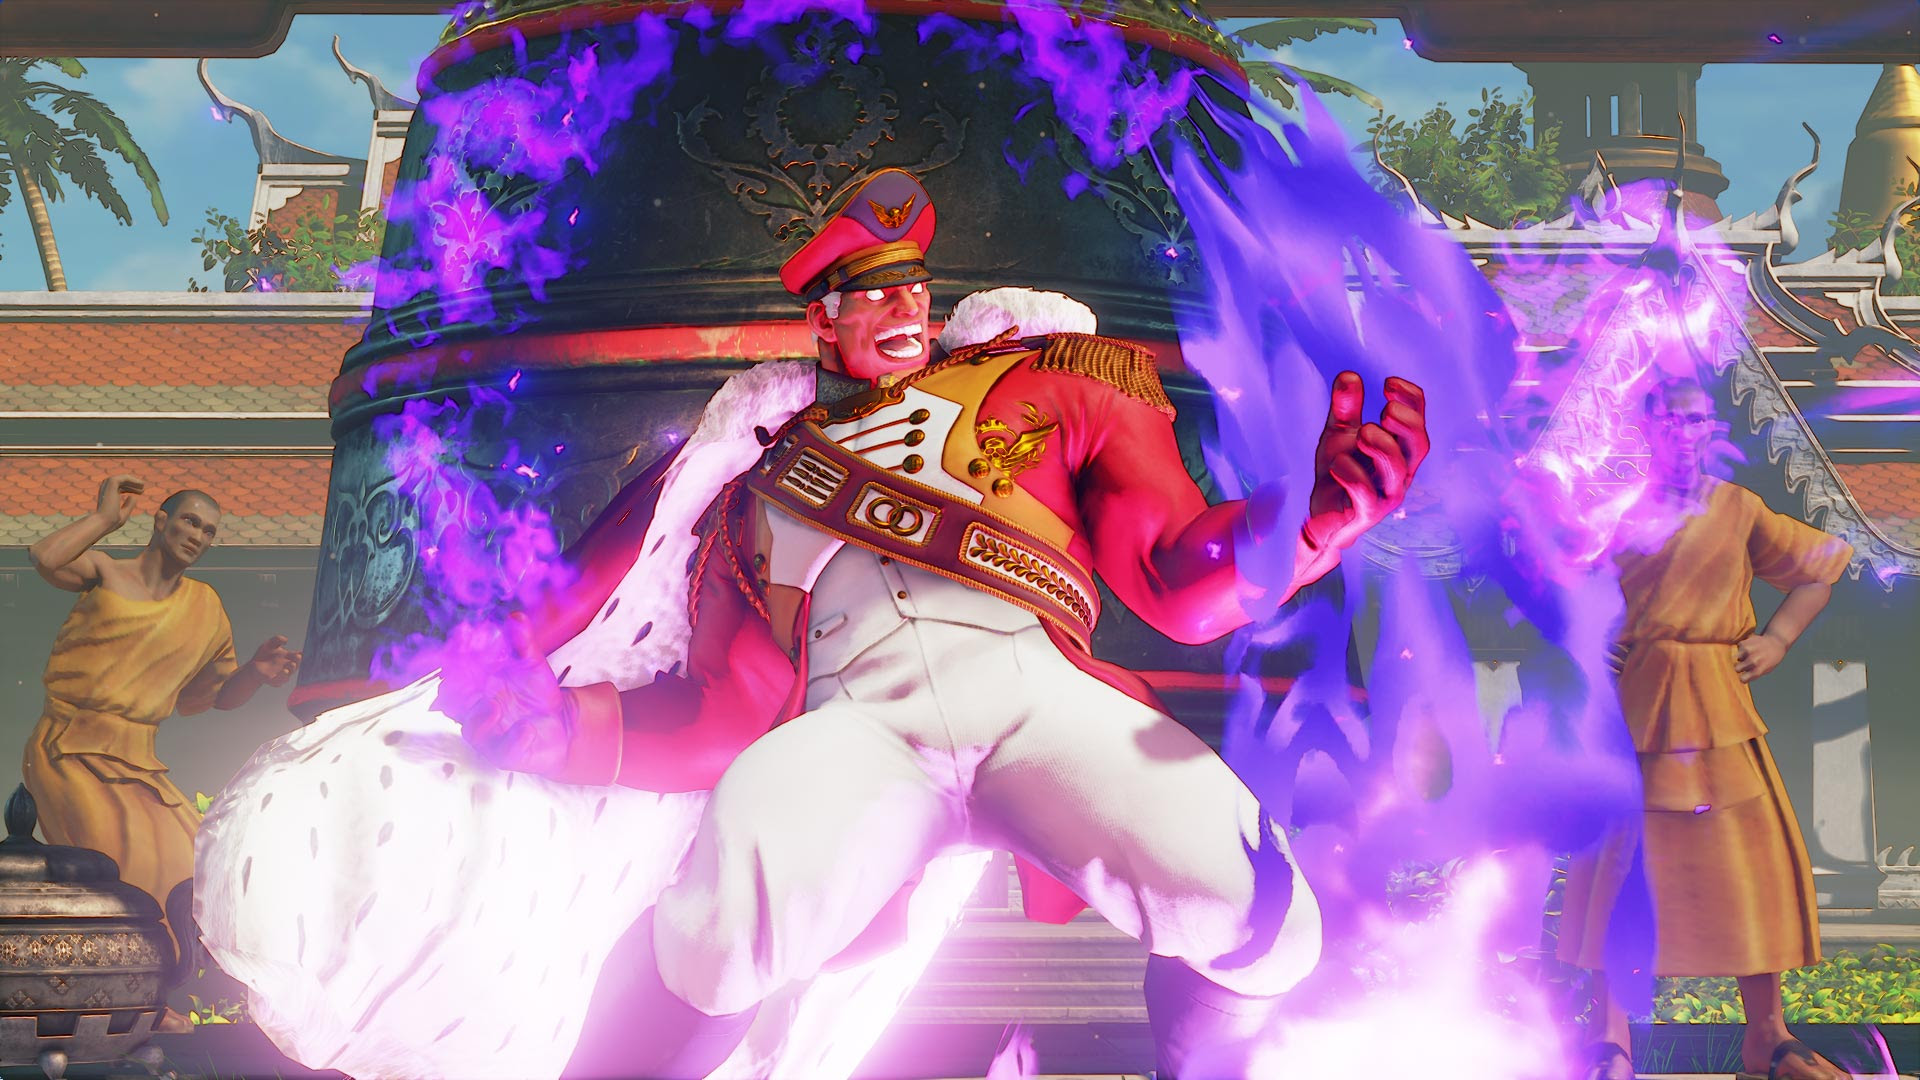 30th anniversary costumes coming to Street Fighter V screenshot